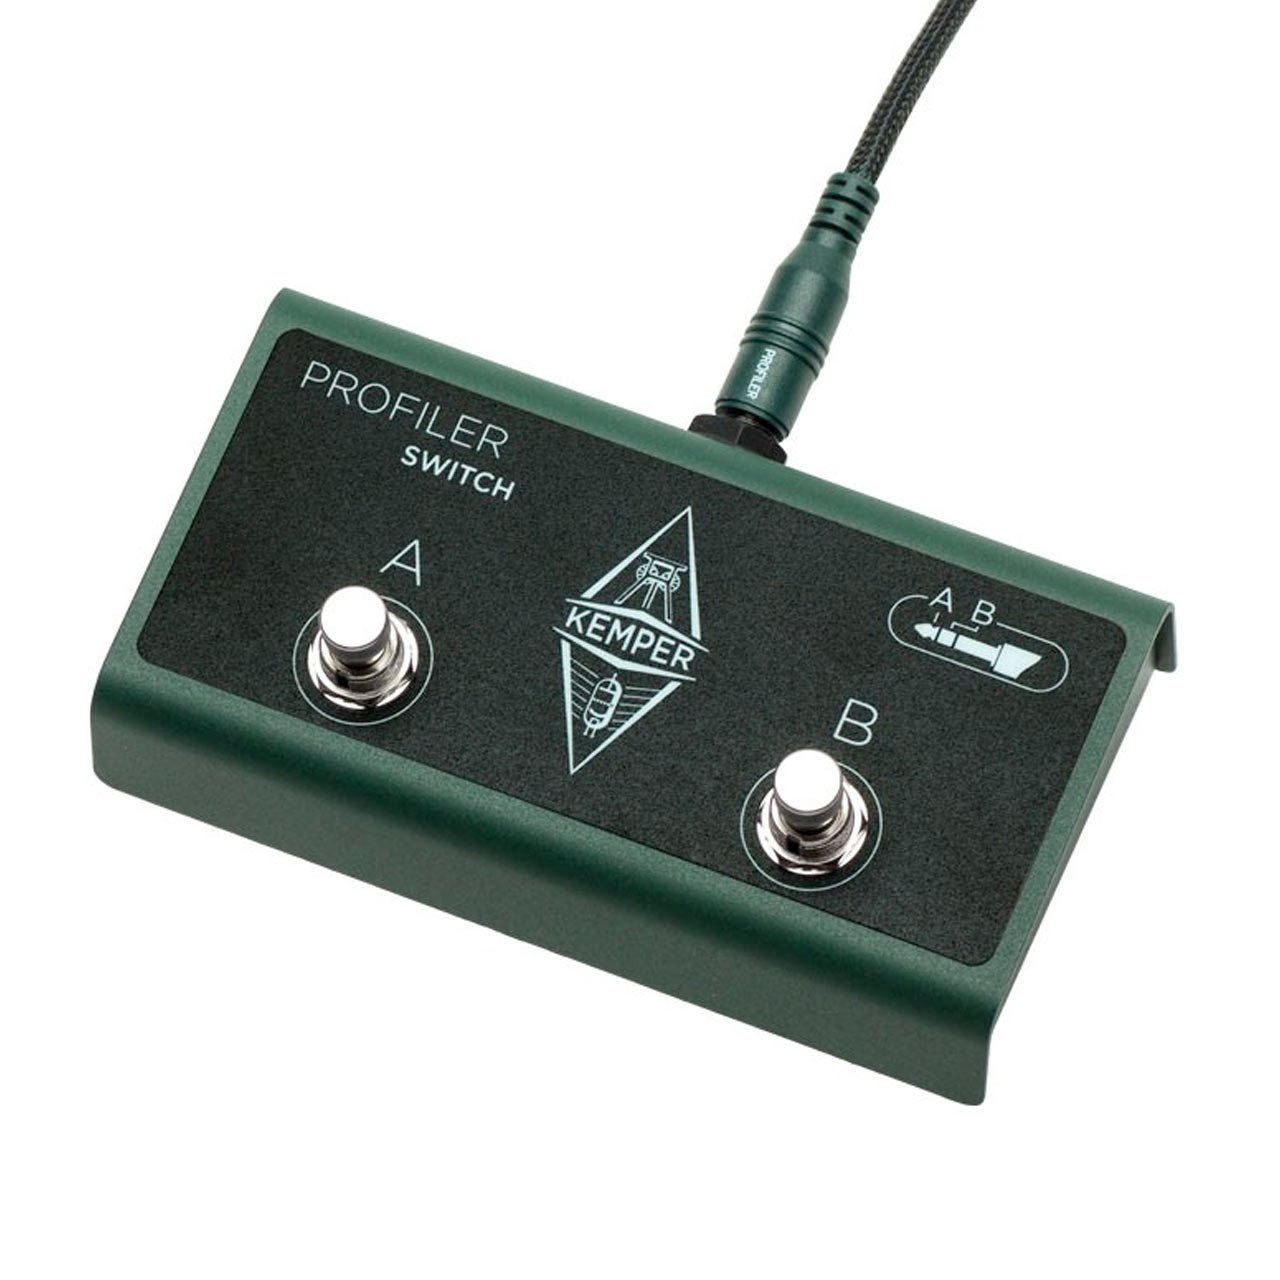 Guitar Accessories - Kemper Profiler Switch 2 Way - For Profiler Amps